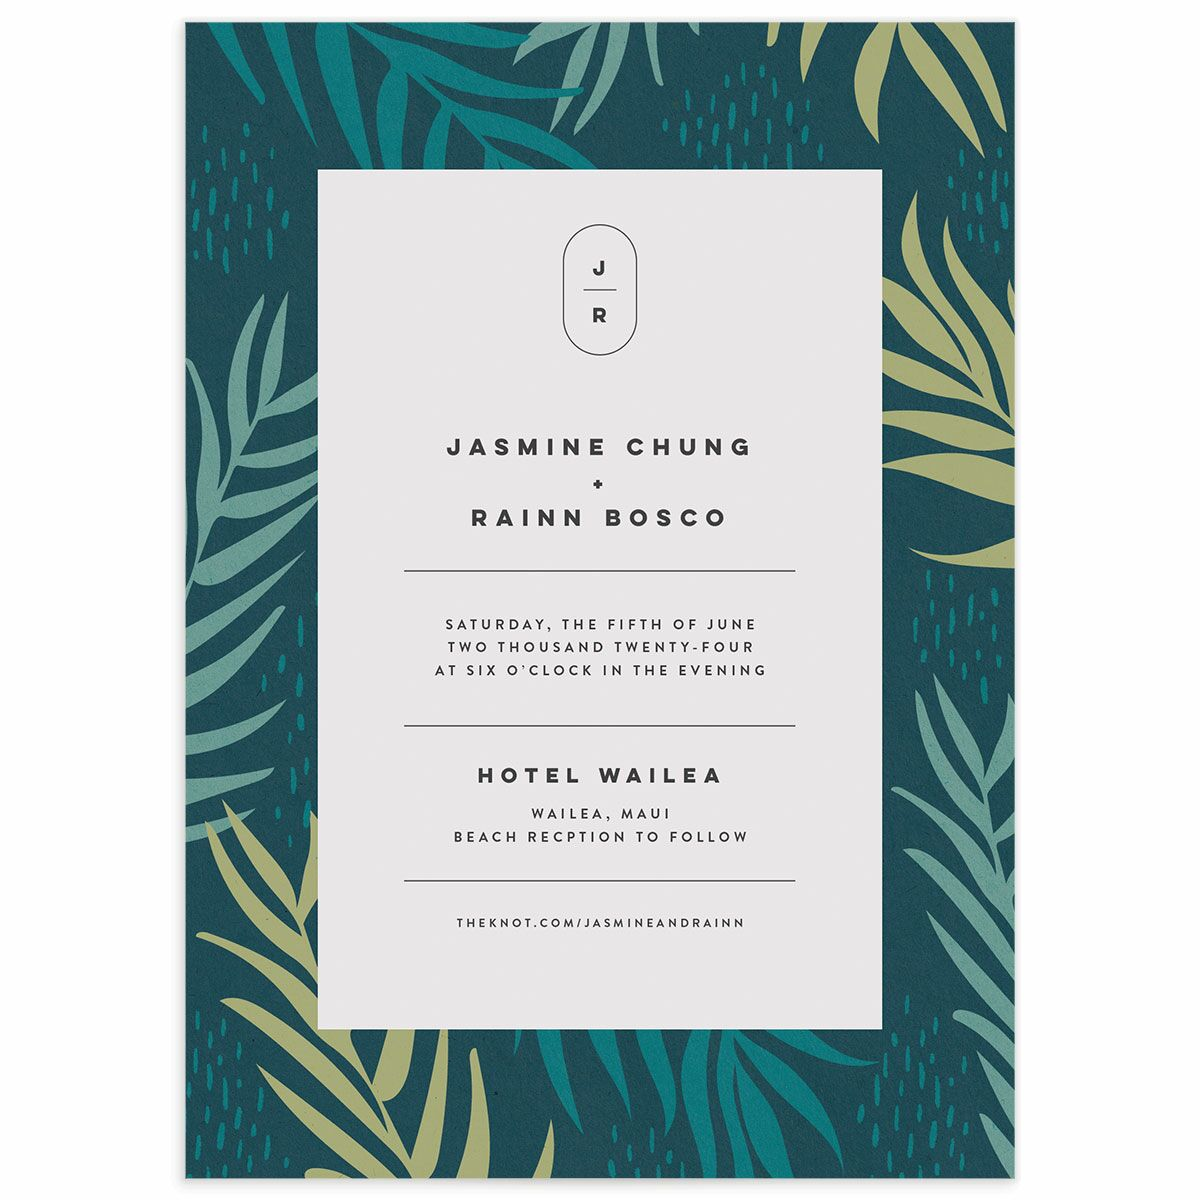 A Wedding Invitation from the Modern Palm Collection